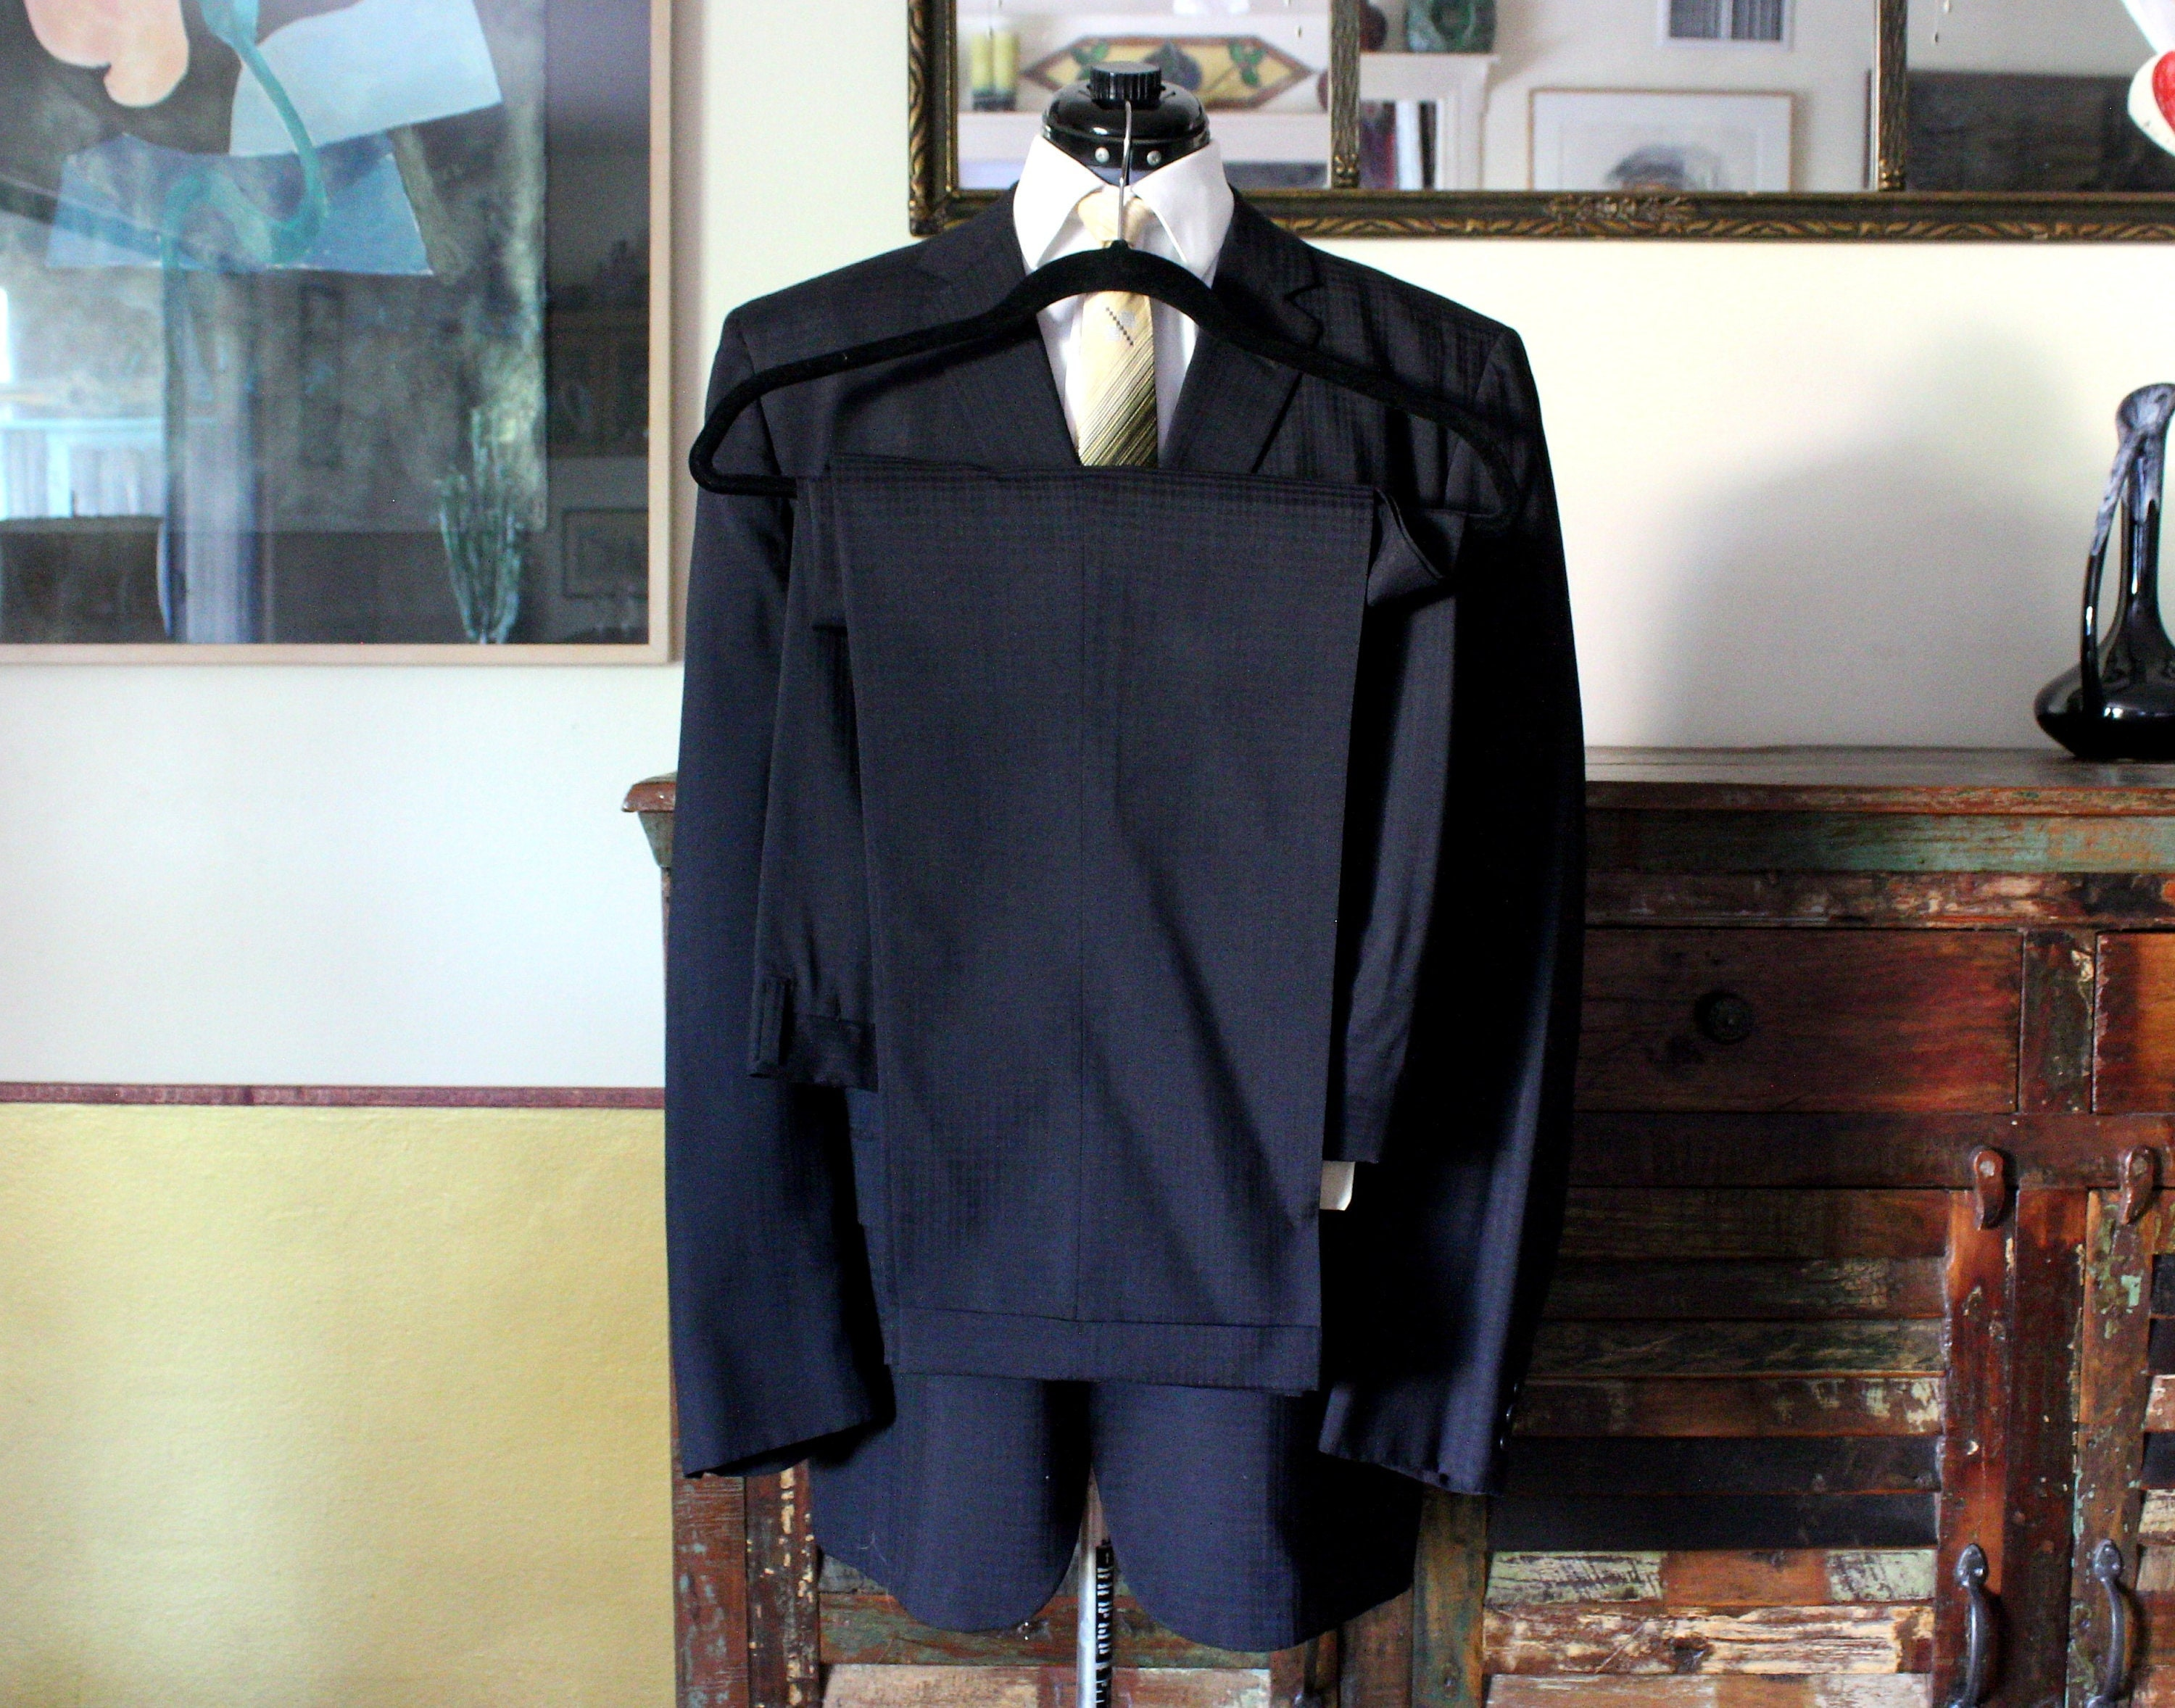 1950s Mens Suits & Sport Coats   50s Suits & Blazers Vintage 1950s-60s Black On Three Button Summer Weight Mens Suit From Carters Nashua, Nh Made in Usa, Size 44L 34 X 29 $162.00 AT vintagedancer.com